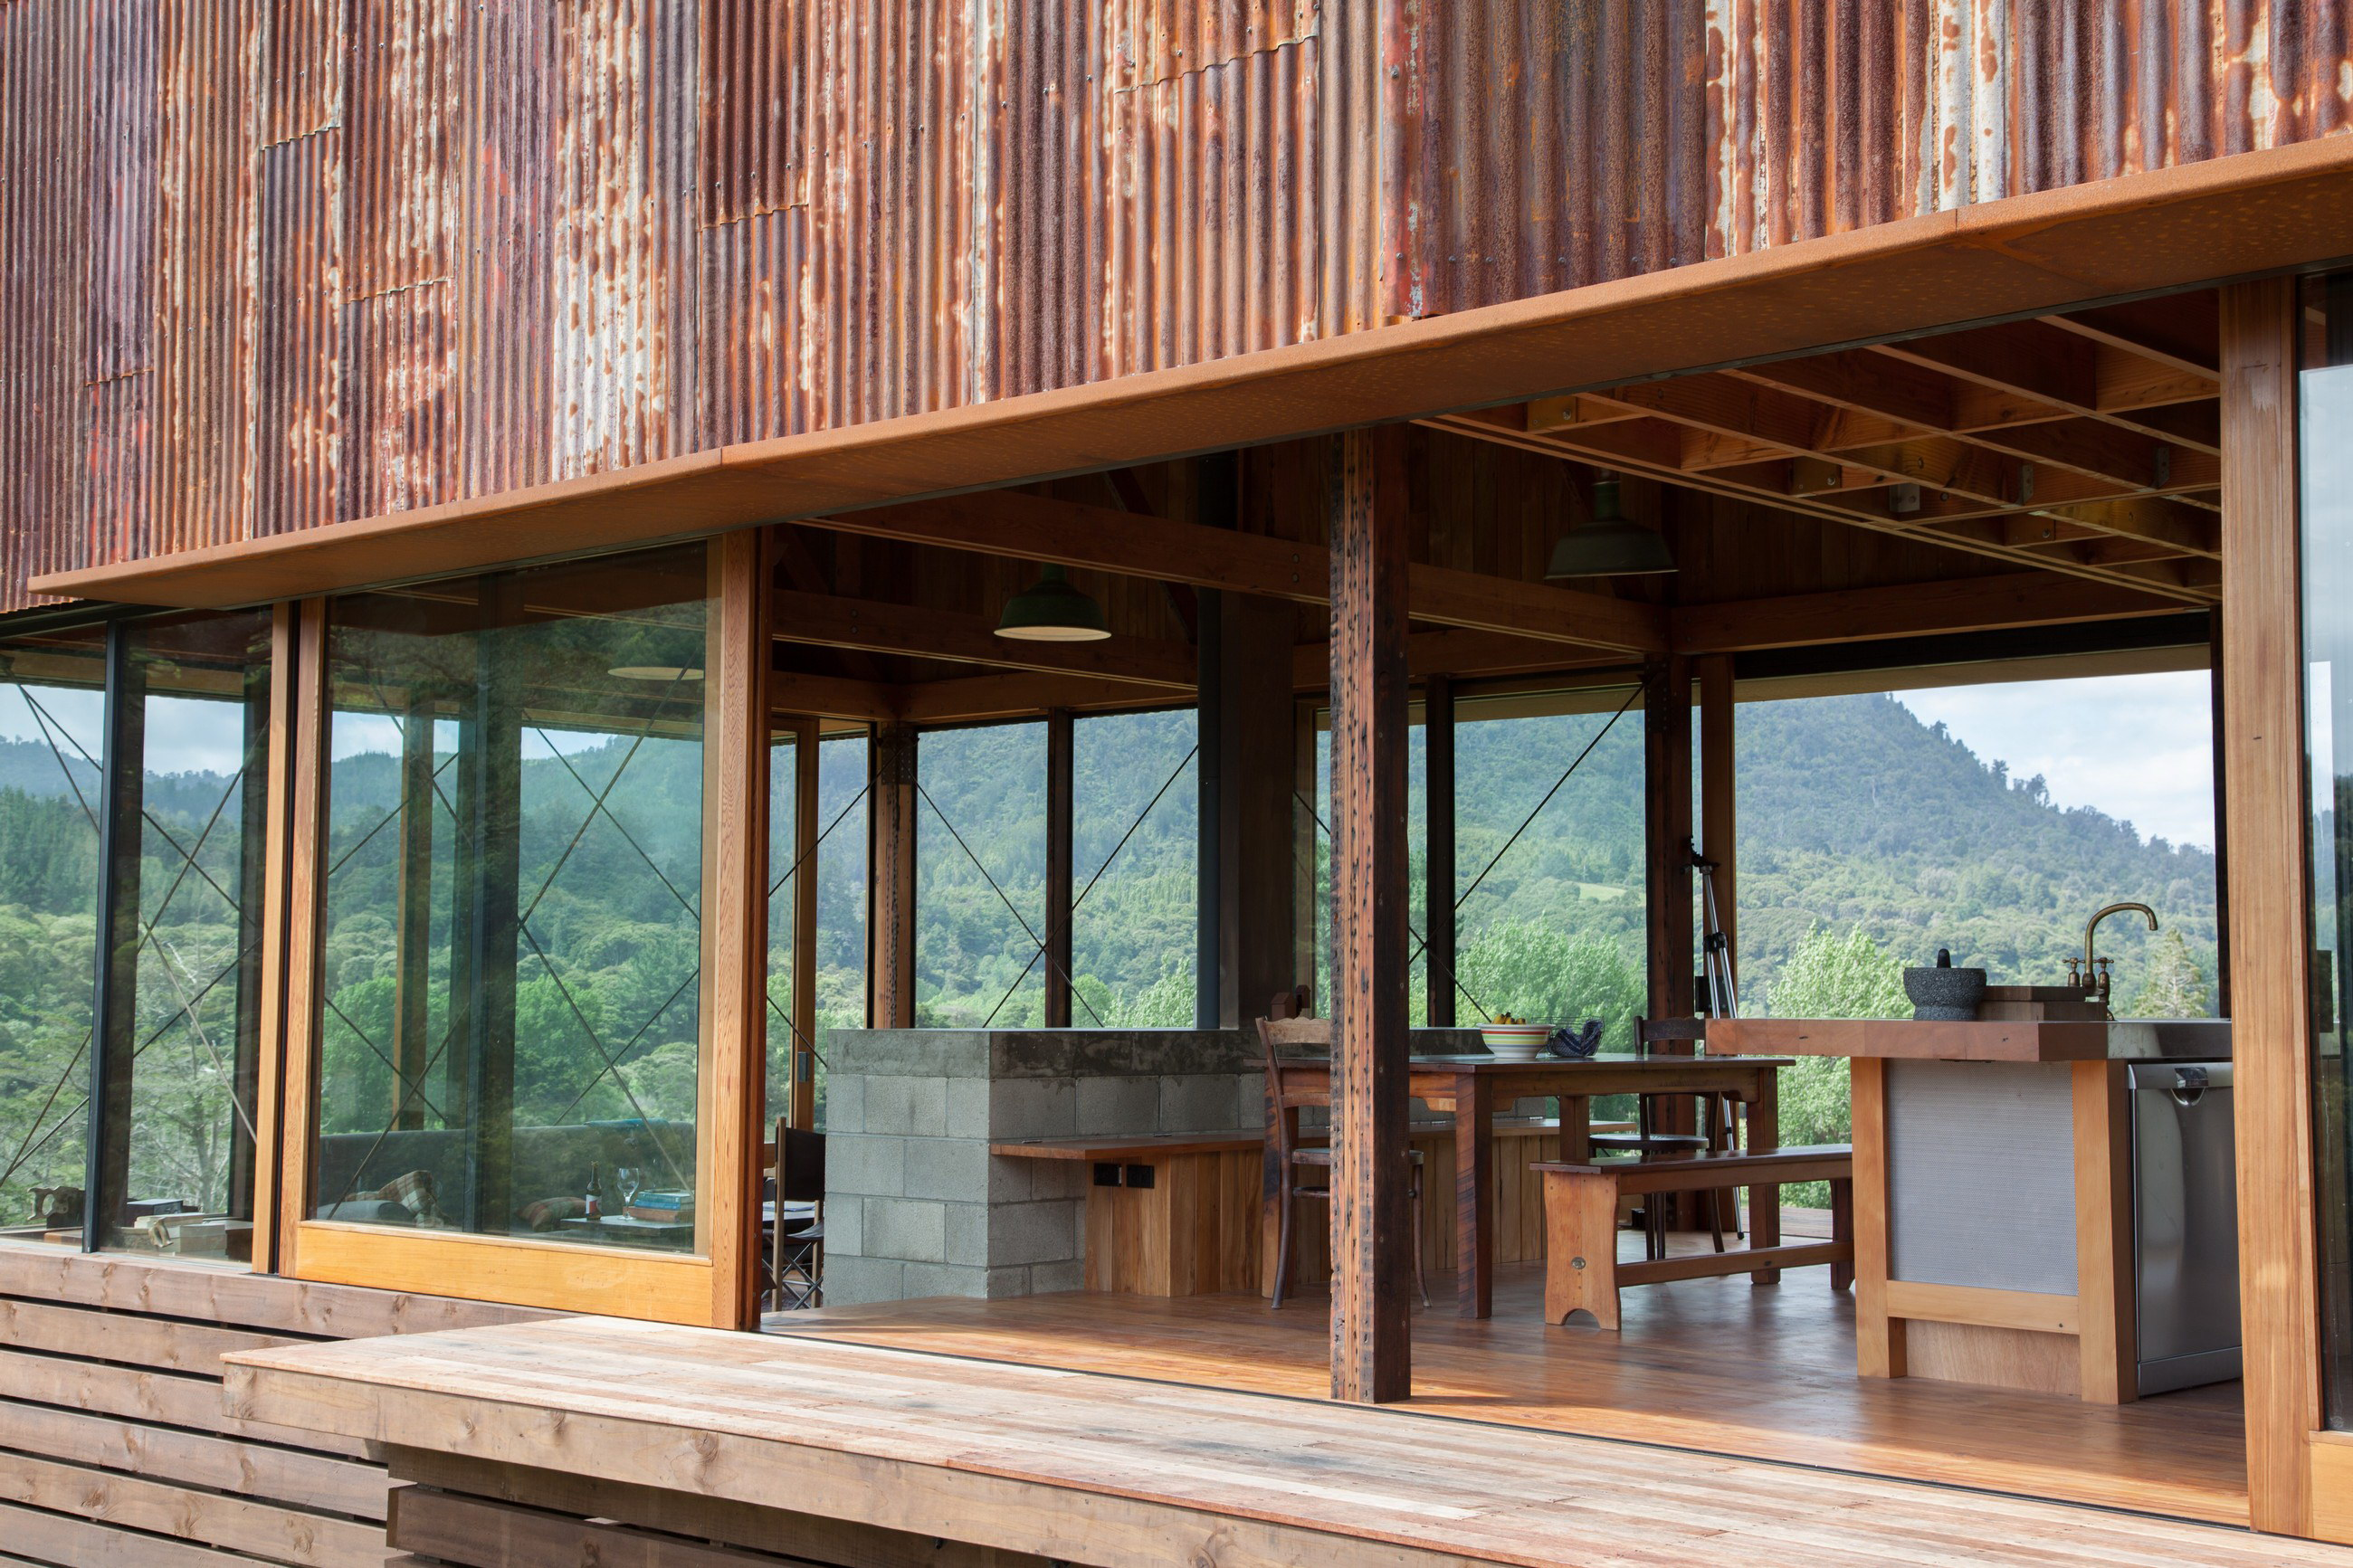 K Valley House by Herbst Architects